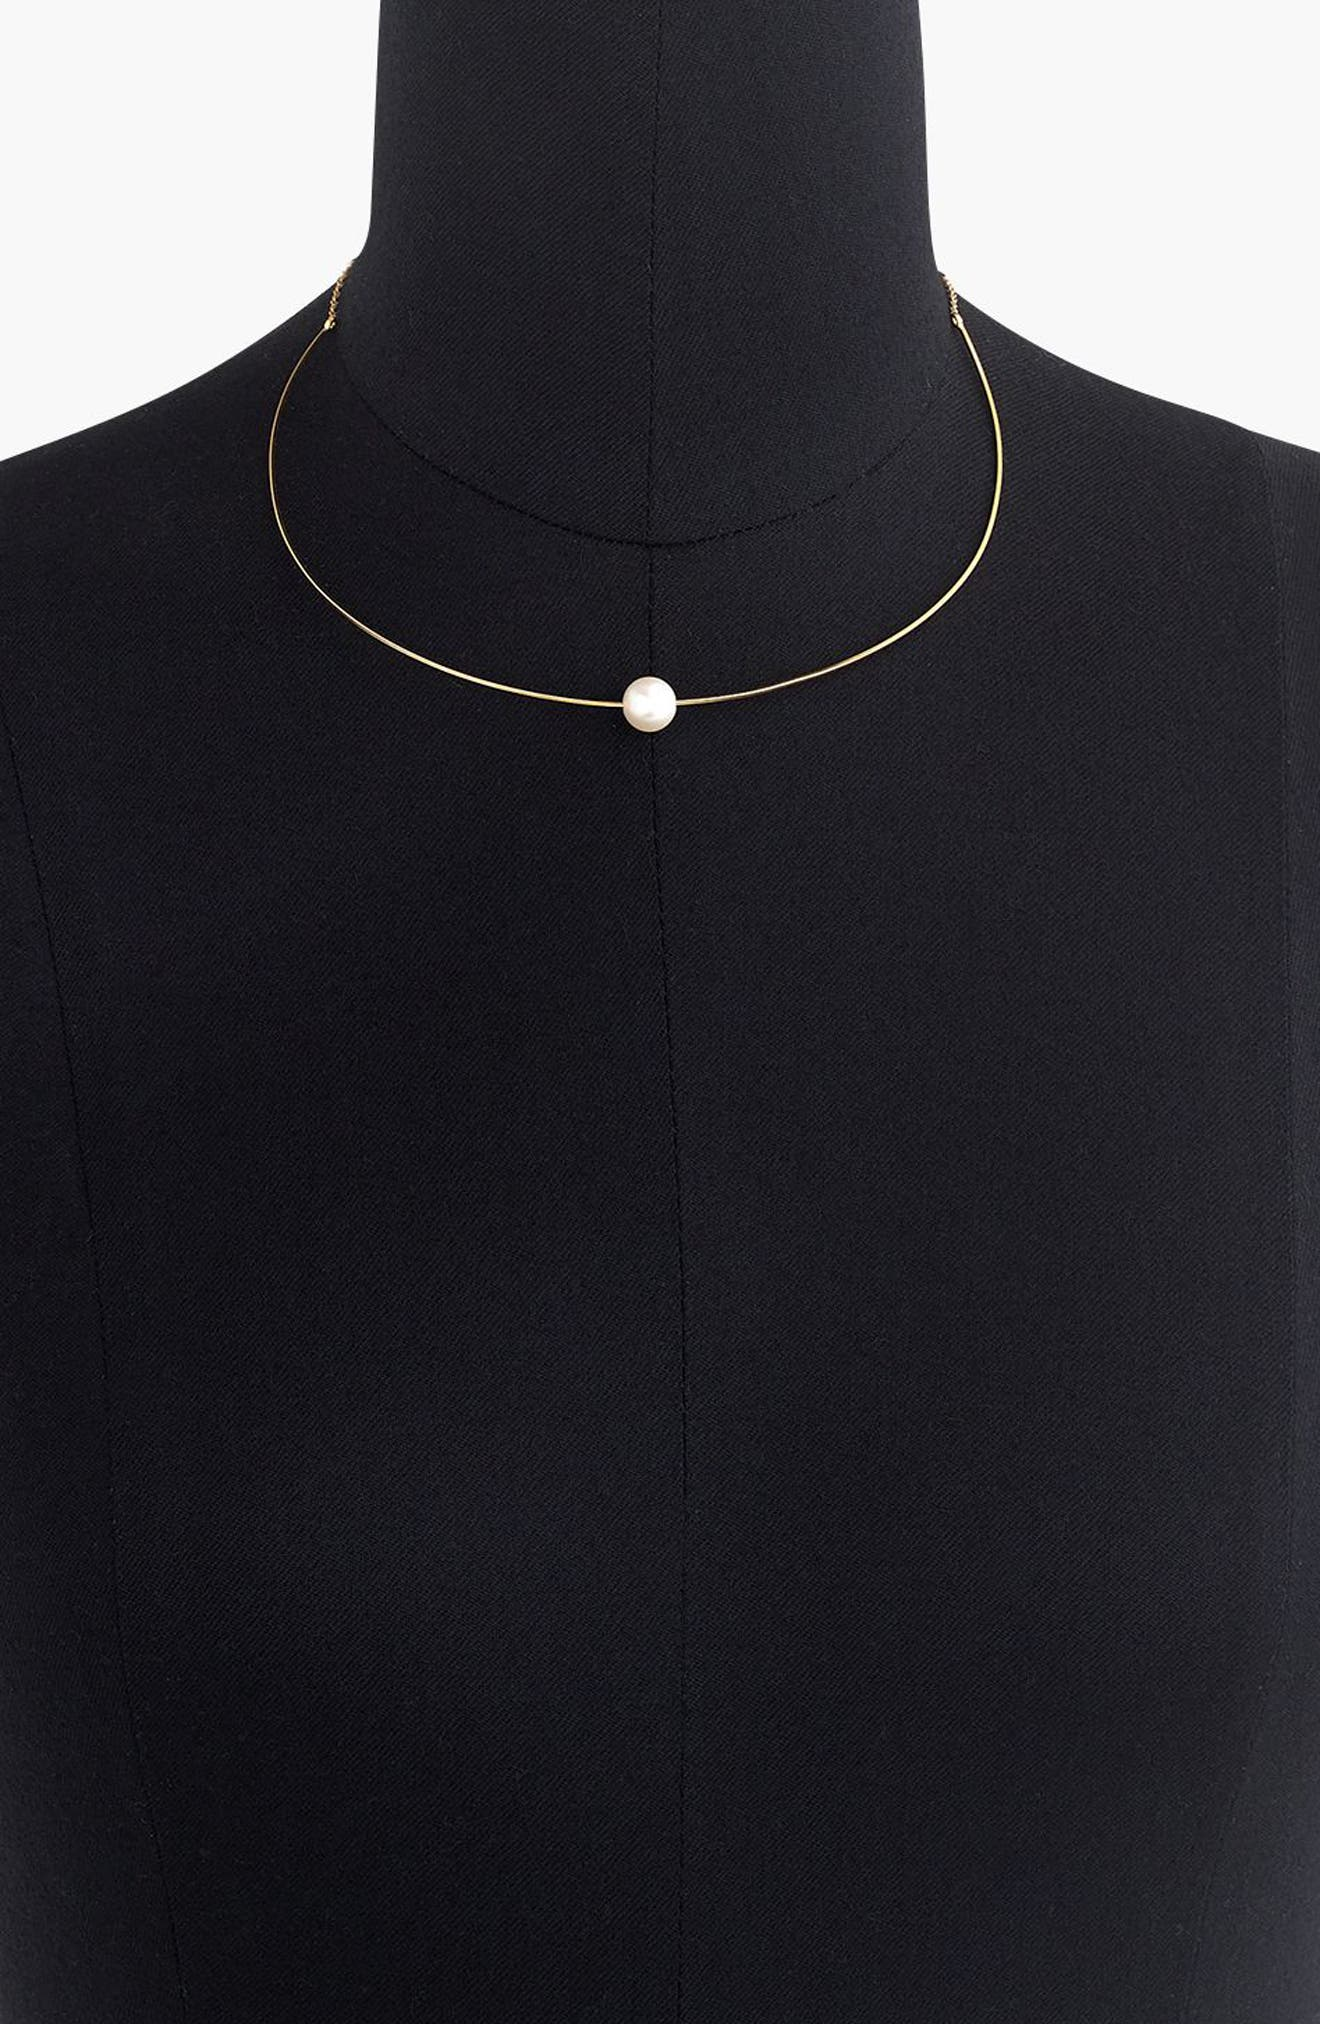 Single Imitation Pearl Collar Necklace,                             Alternate thumbnail 2, color,                             710